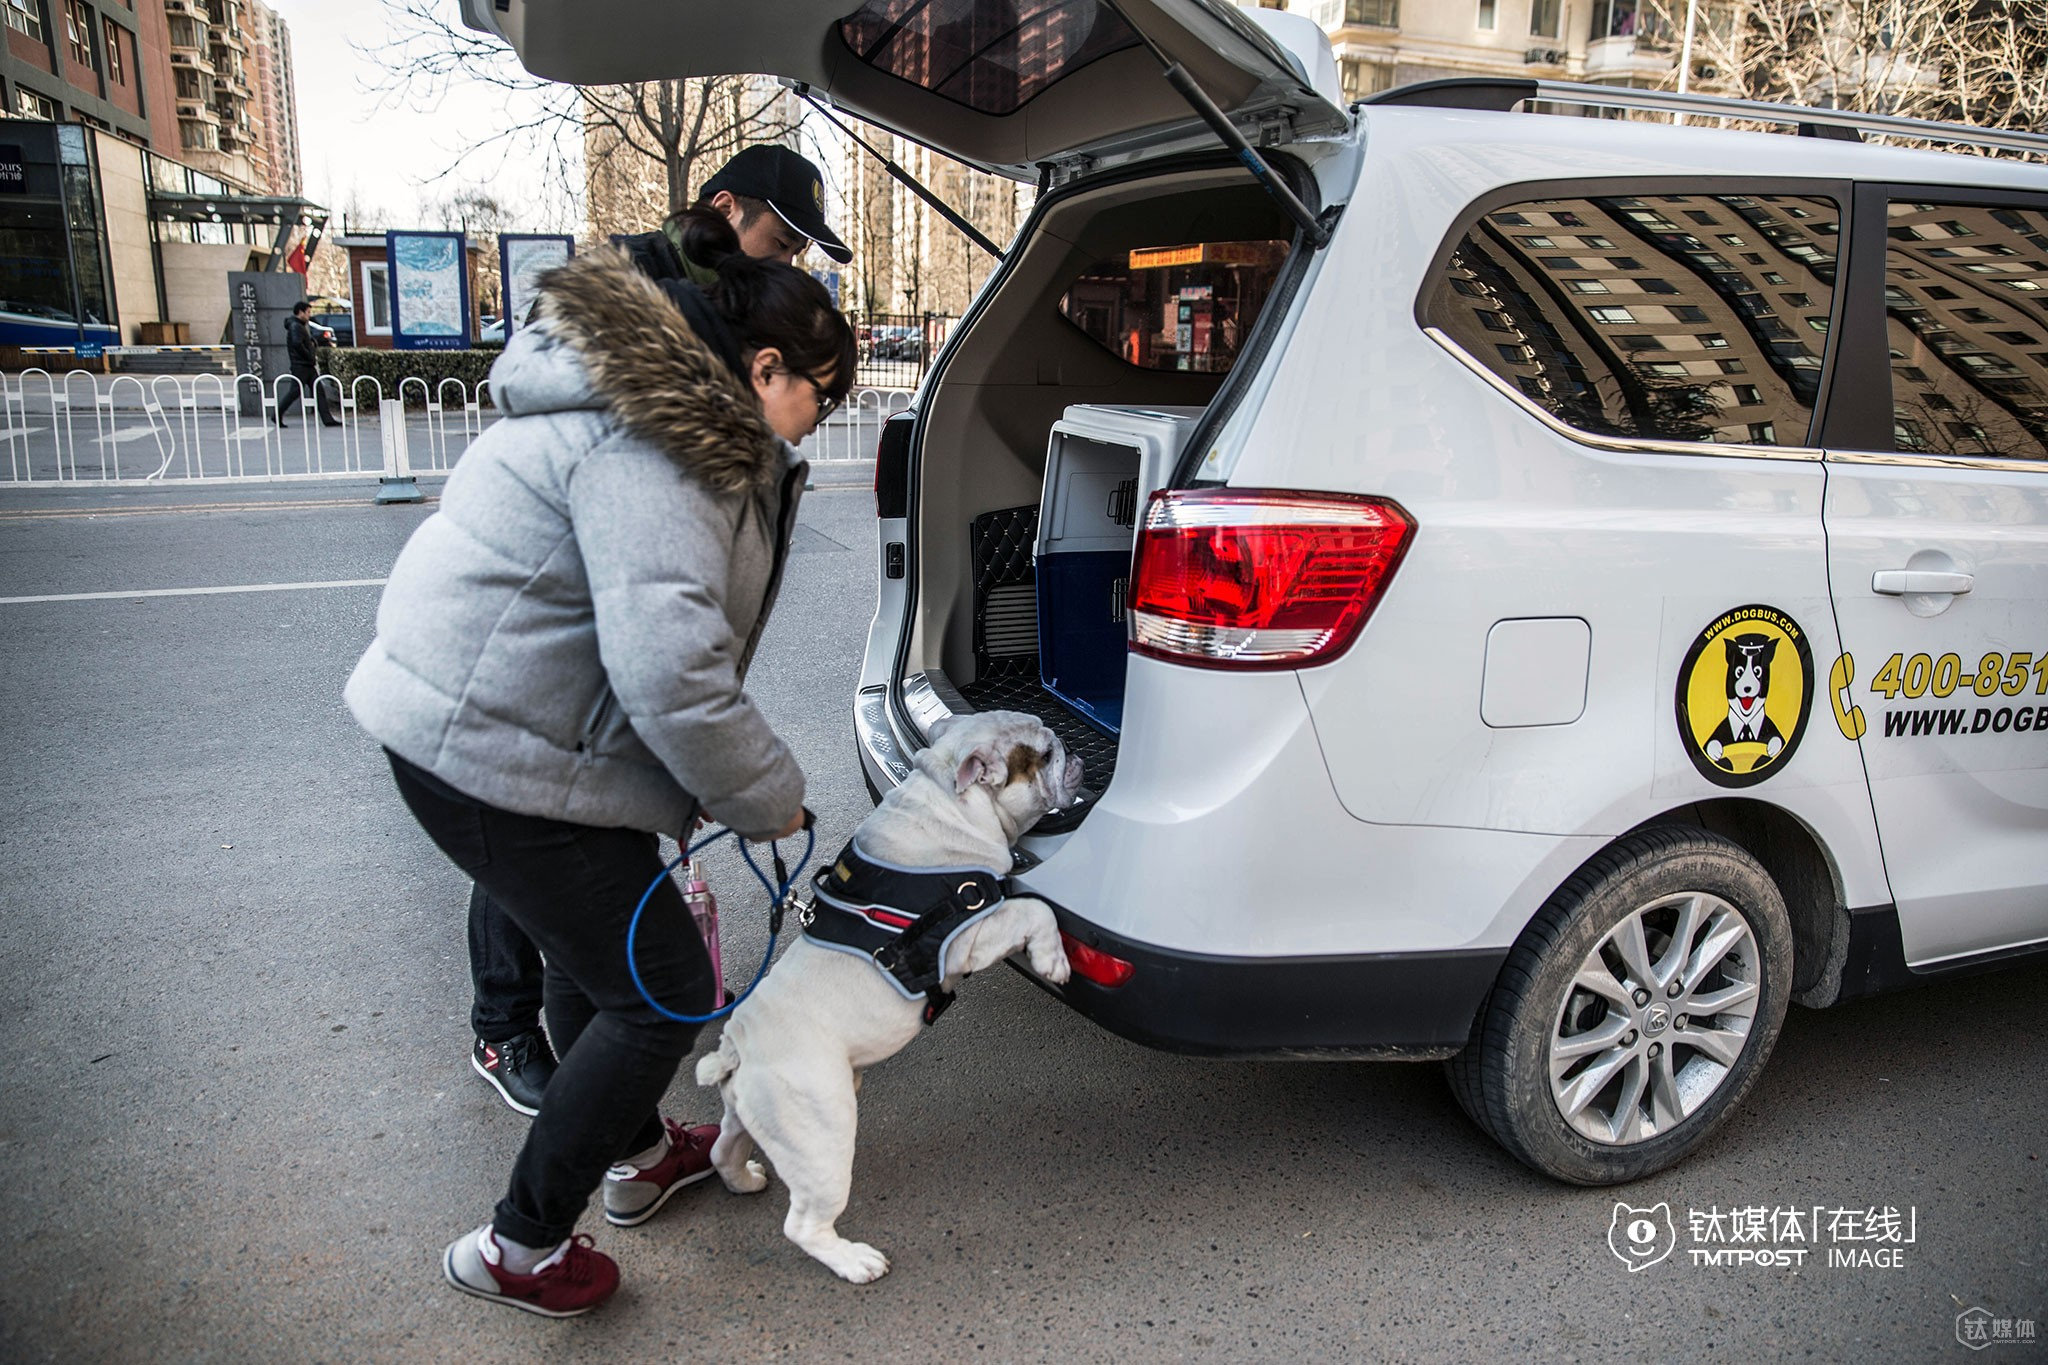 "On February 20th, 2016, a DogBus was picking up a user and his dog from Shuangjing, to a ""pet paradise"" around the north three ring of Beijing. At present, DogBus charges users with 3.8 RMB per kilometer (no basic fare, no time rate). Users could book a DogBus and estimate the fare by simply inputting the starting and drop-off point via DogBus's WeChat Official Account."